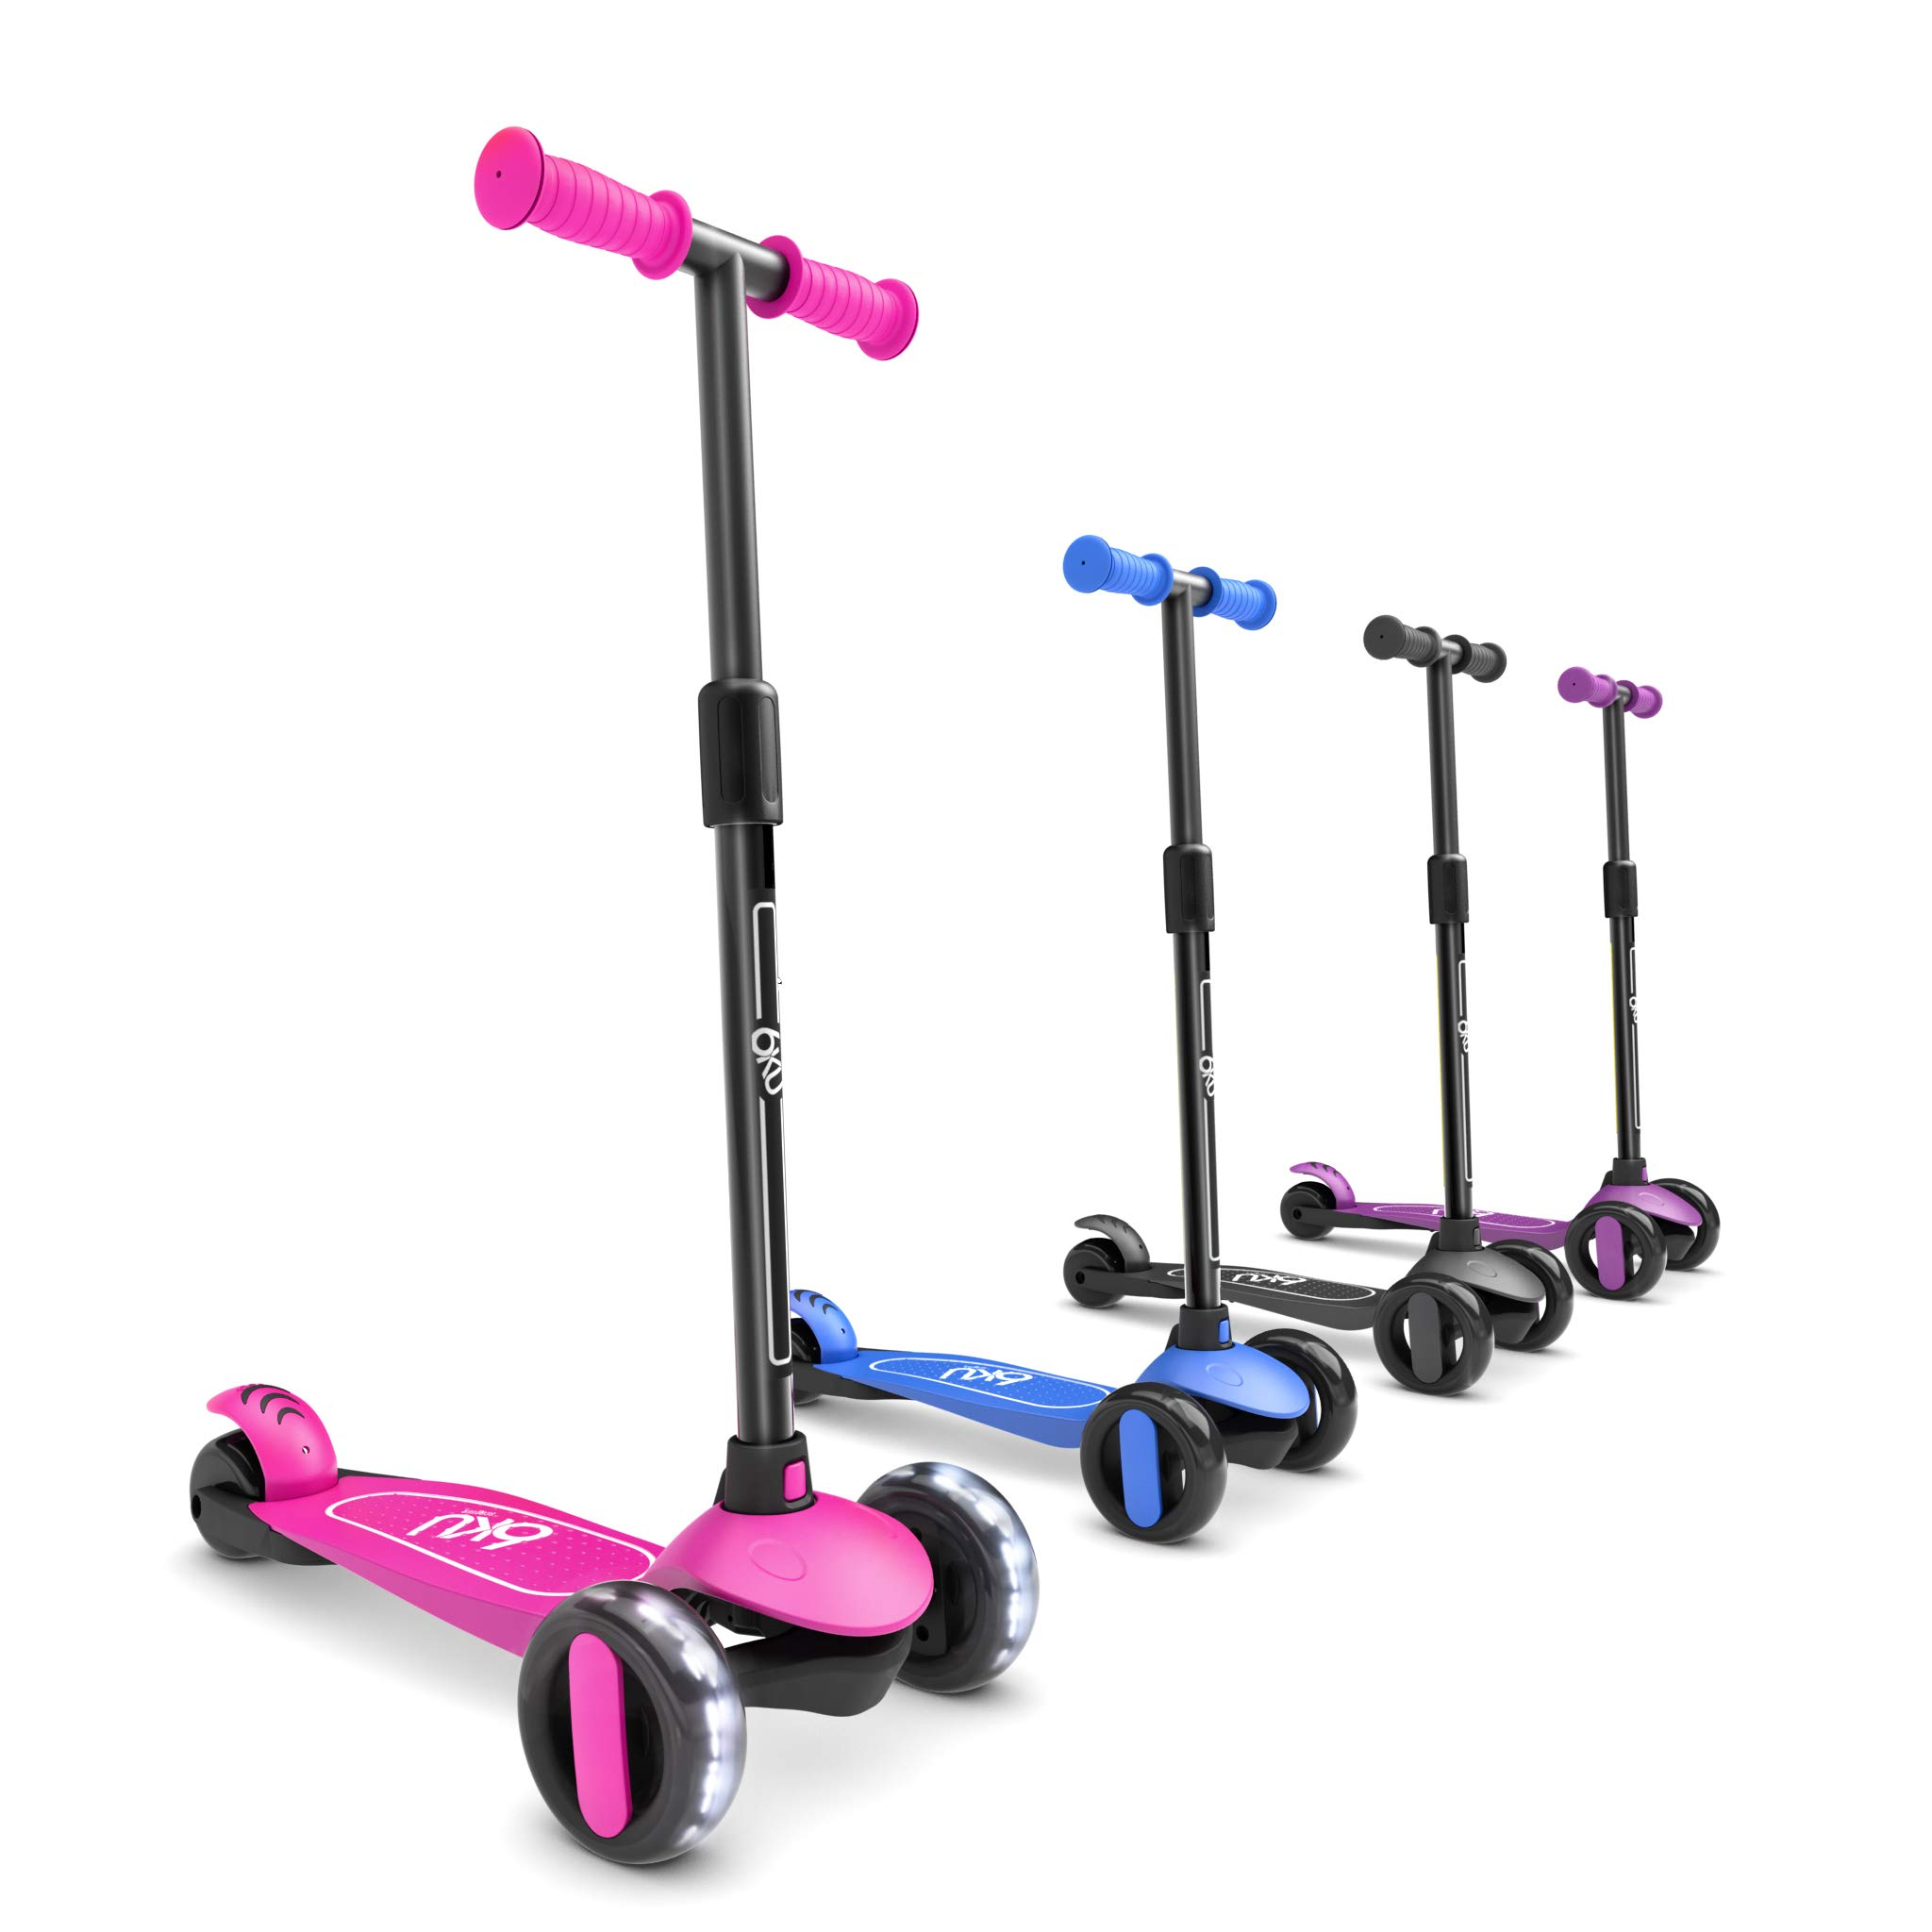 6KU 3 Wheels Kick Scooter for Kids and Toddlers Girls & Boys, Adjustable Height, Learn to Steer with Extra-Wide PU LED Flashing Wheels for Children from 2 to 5 Year-Old. (Pink) by 6KU